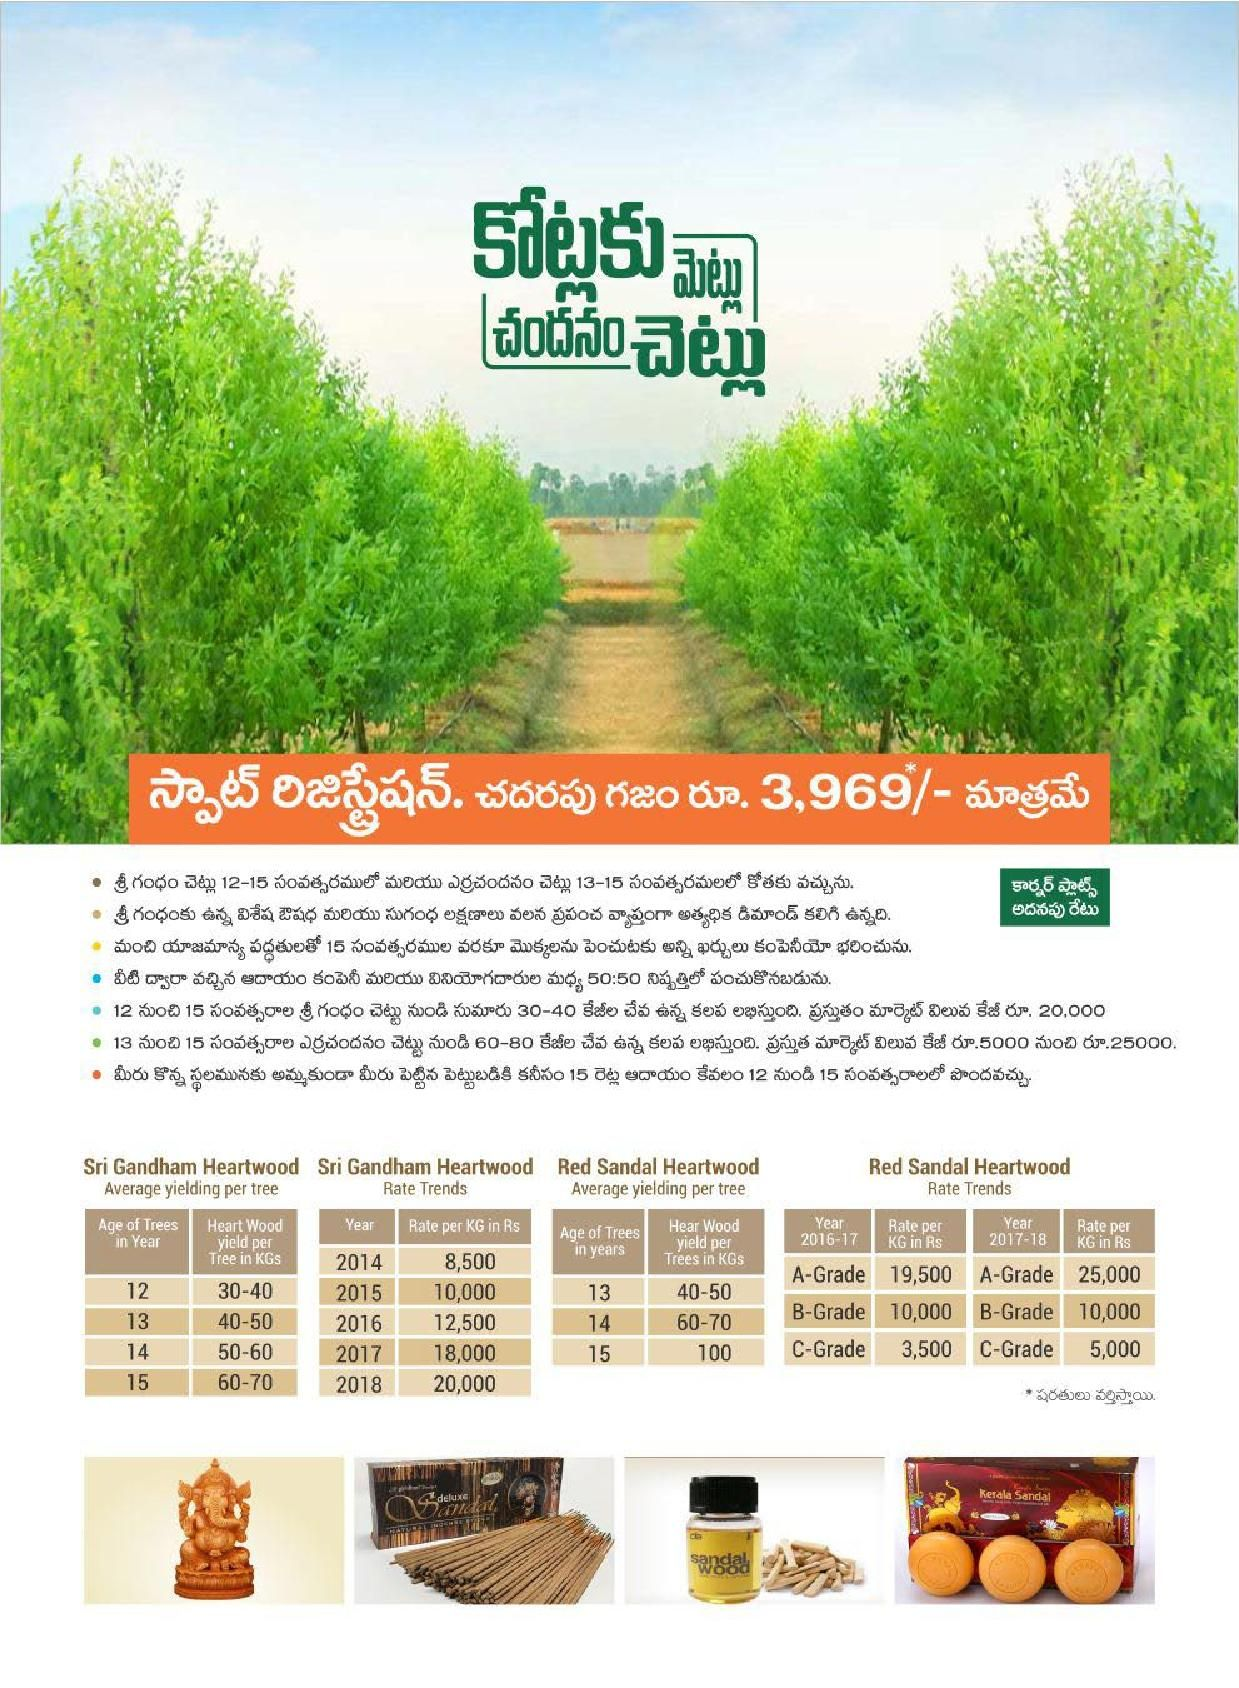 Universal Cash Crops is a 100% agro-based business that deals in